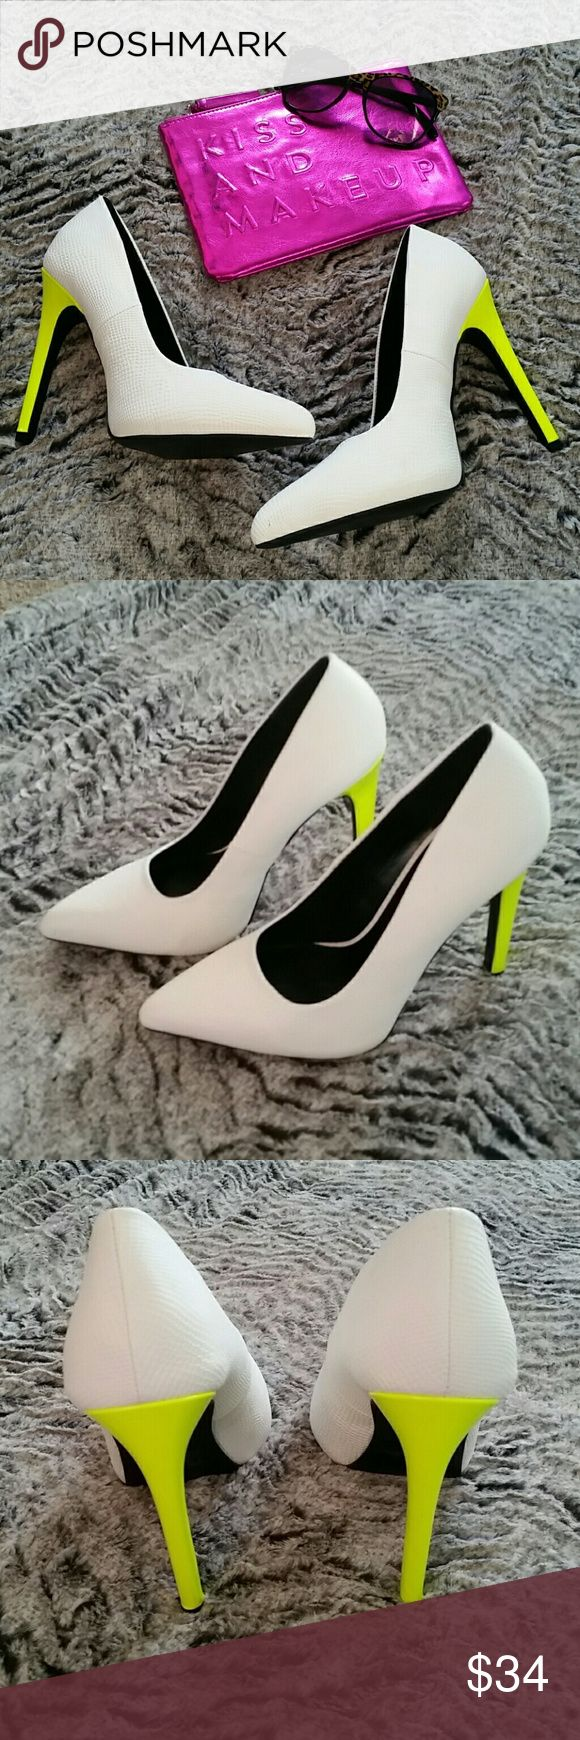 HP Wardrobe Refresh White and neon pumps Offers Welcome! These shoes are H.O.T. HOT!!  Pointy toe with a neon yellow heel.  Crocodile skin design on the white. These run about a half size small.  Heel height is 4.5 inches.  NIB Shoes Heels